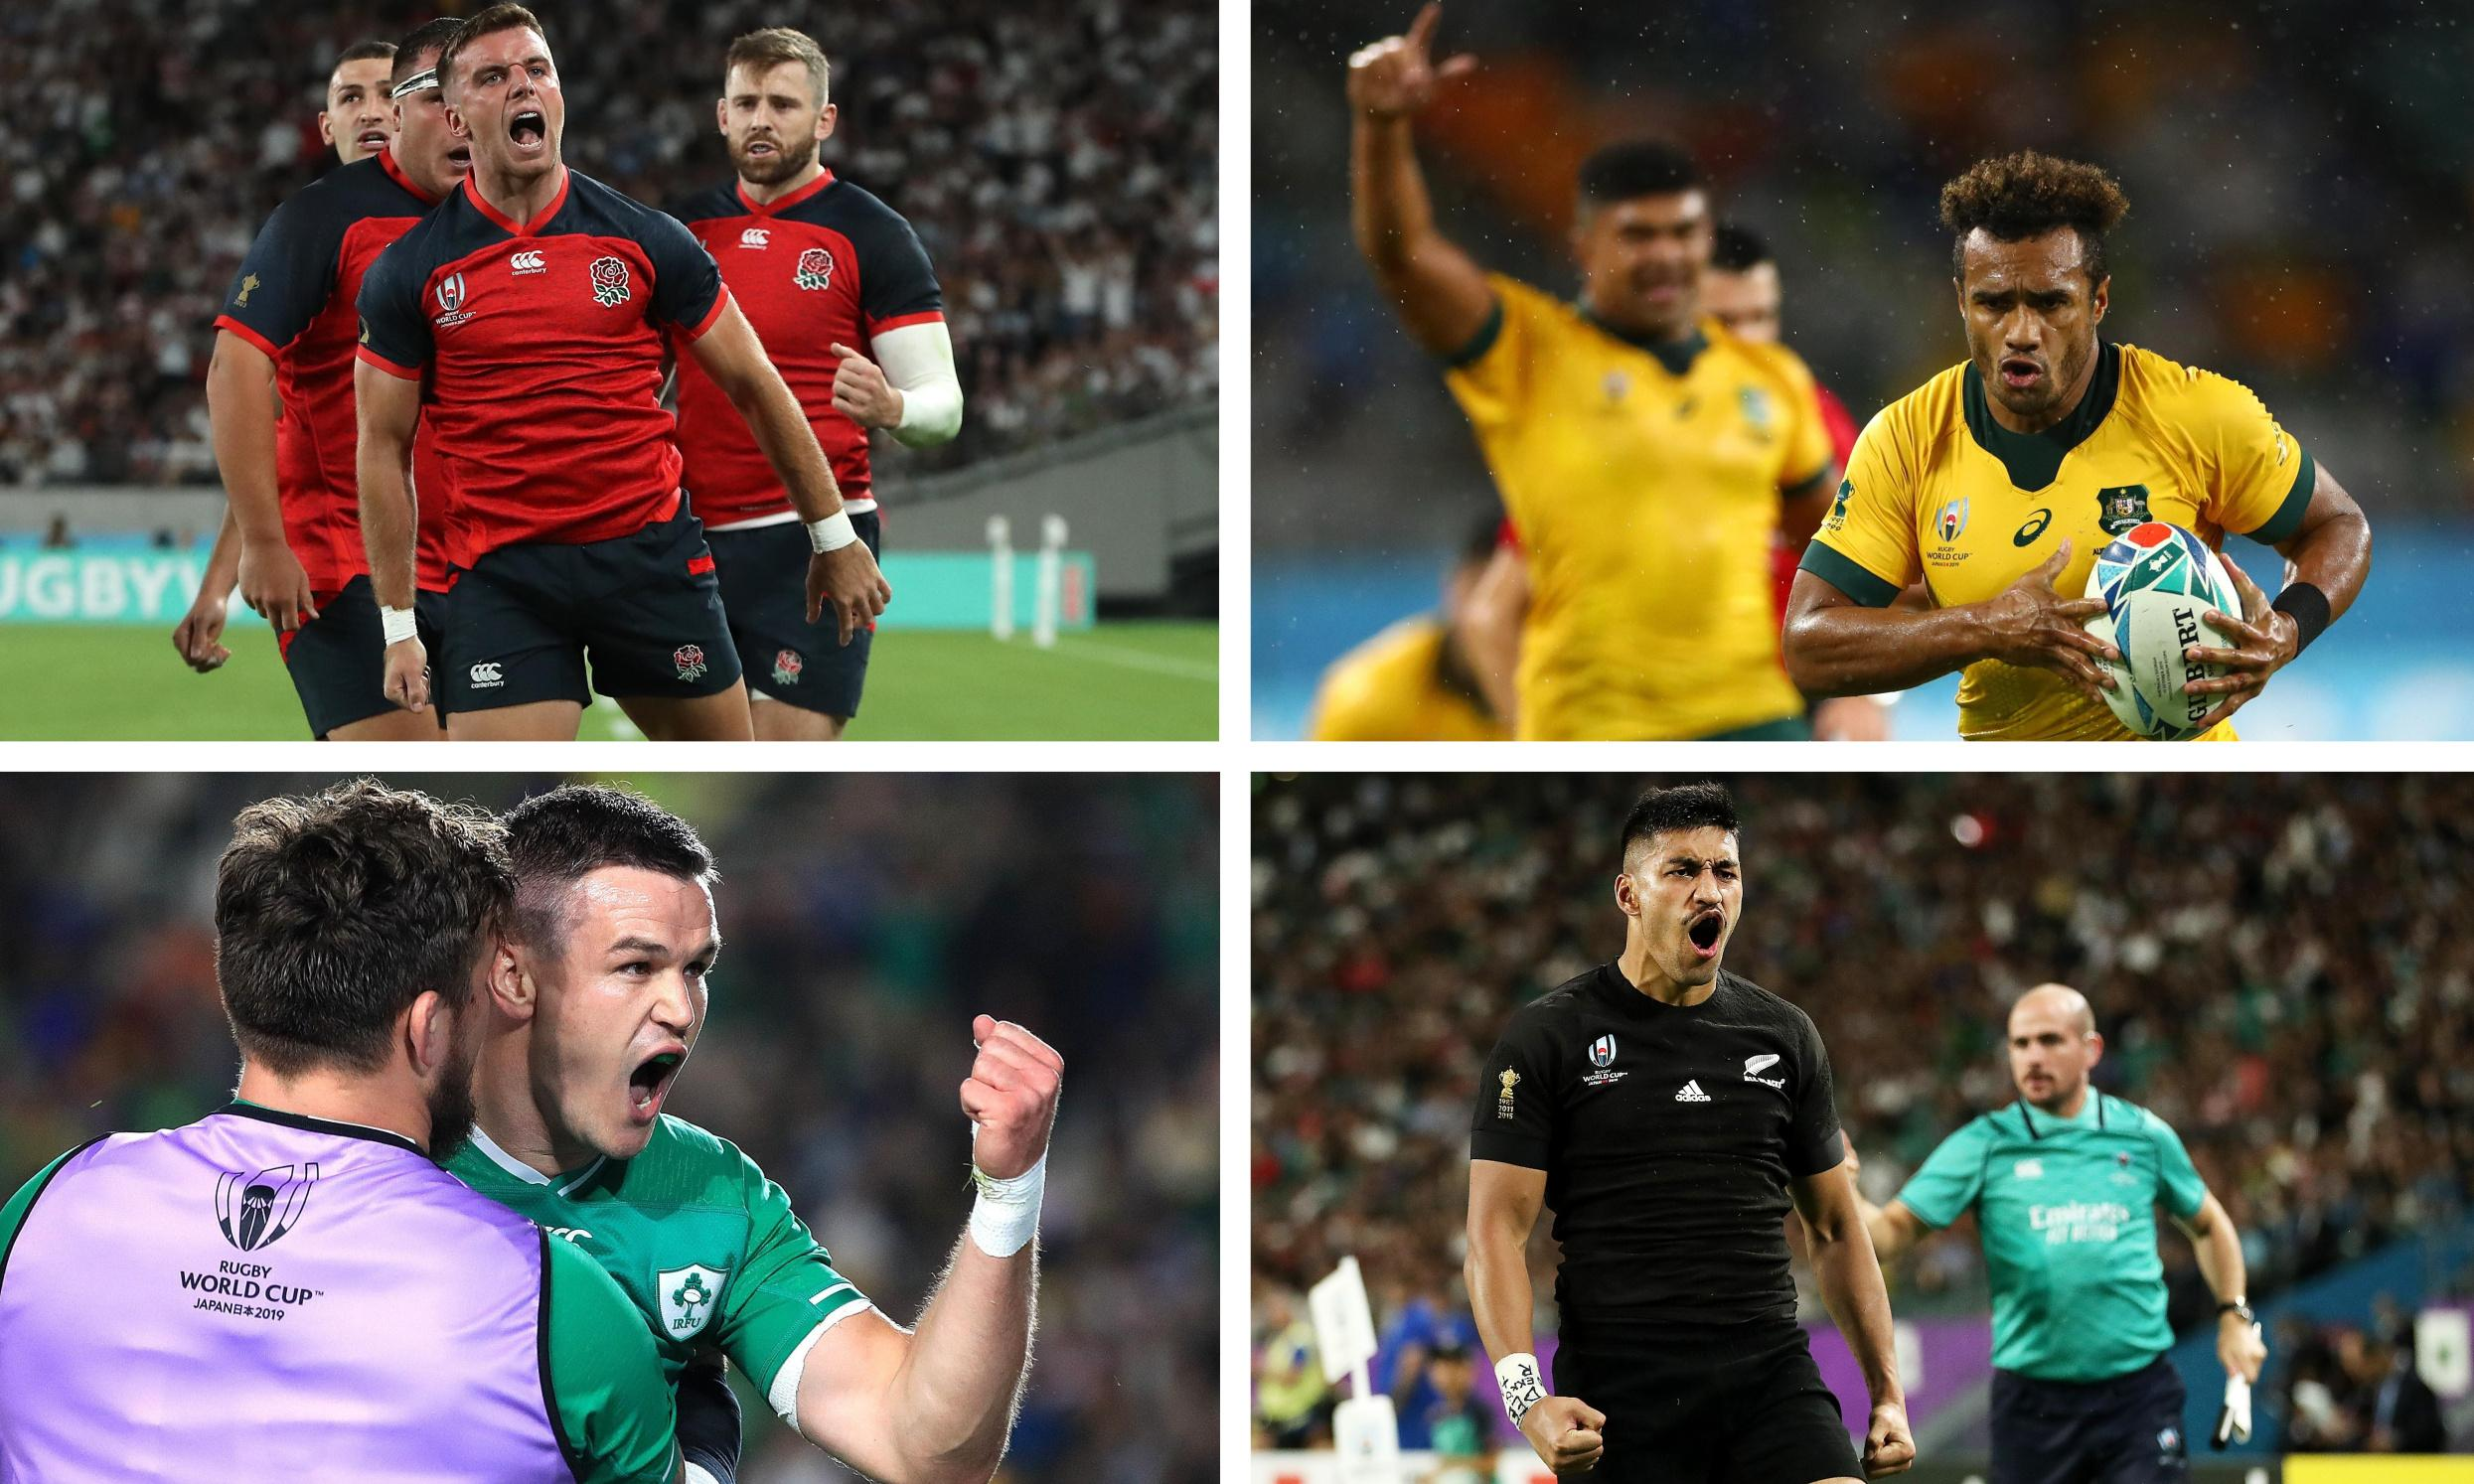 Rugby World Cup: how the quarter-finalists shape up